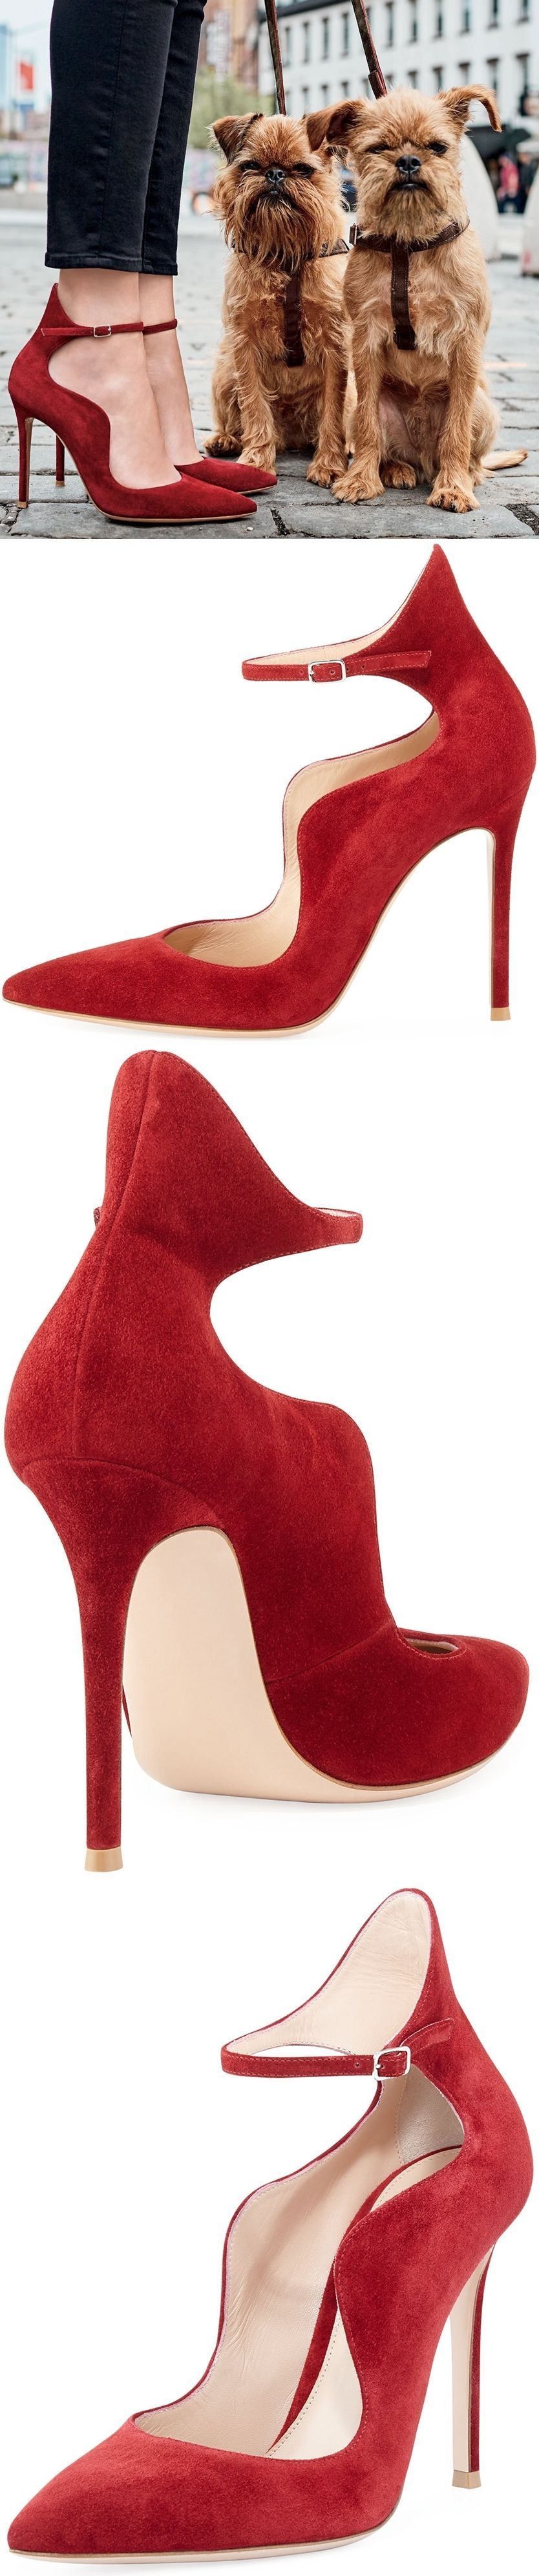 Gianvito Rossi Scalloped Suede Ankle-Wrap Pump 5W1euYq